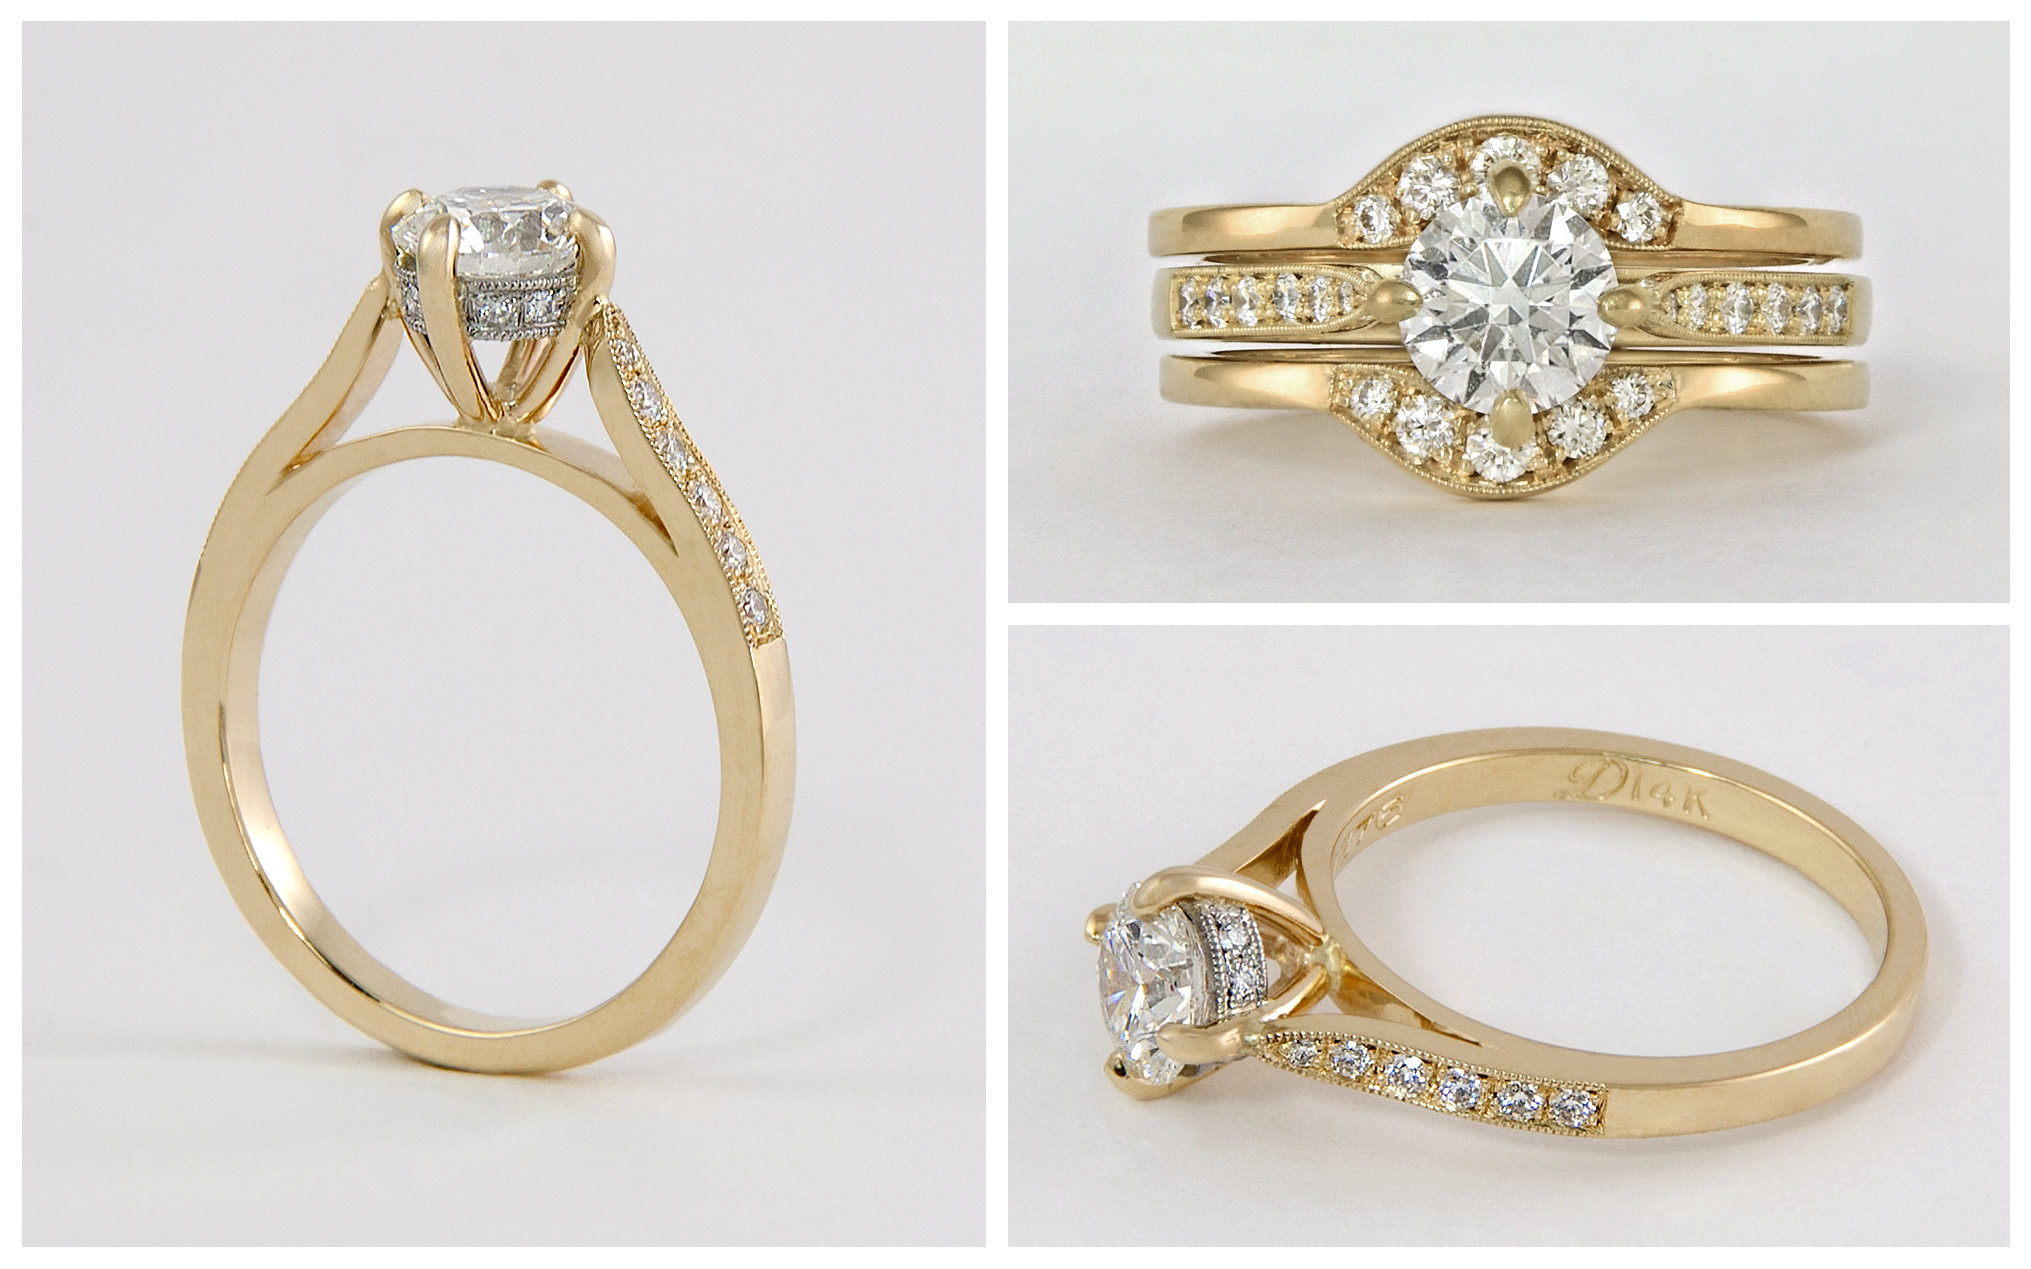 14KY and Platinum Hand Fabricated Diamond Engagement Ring and Band